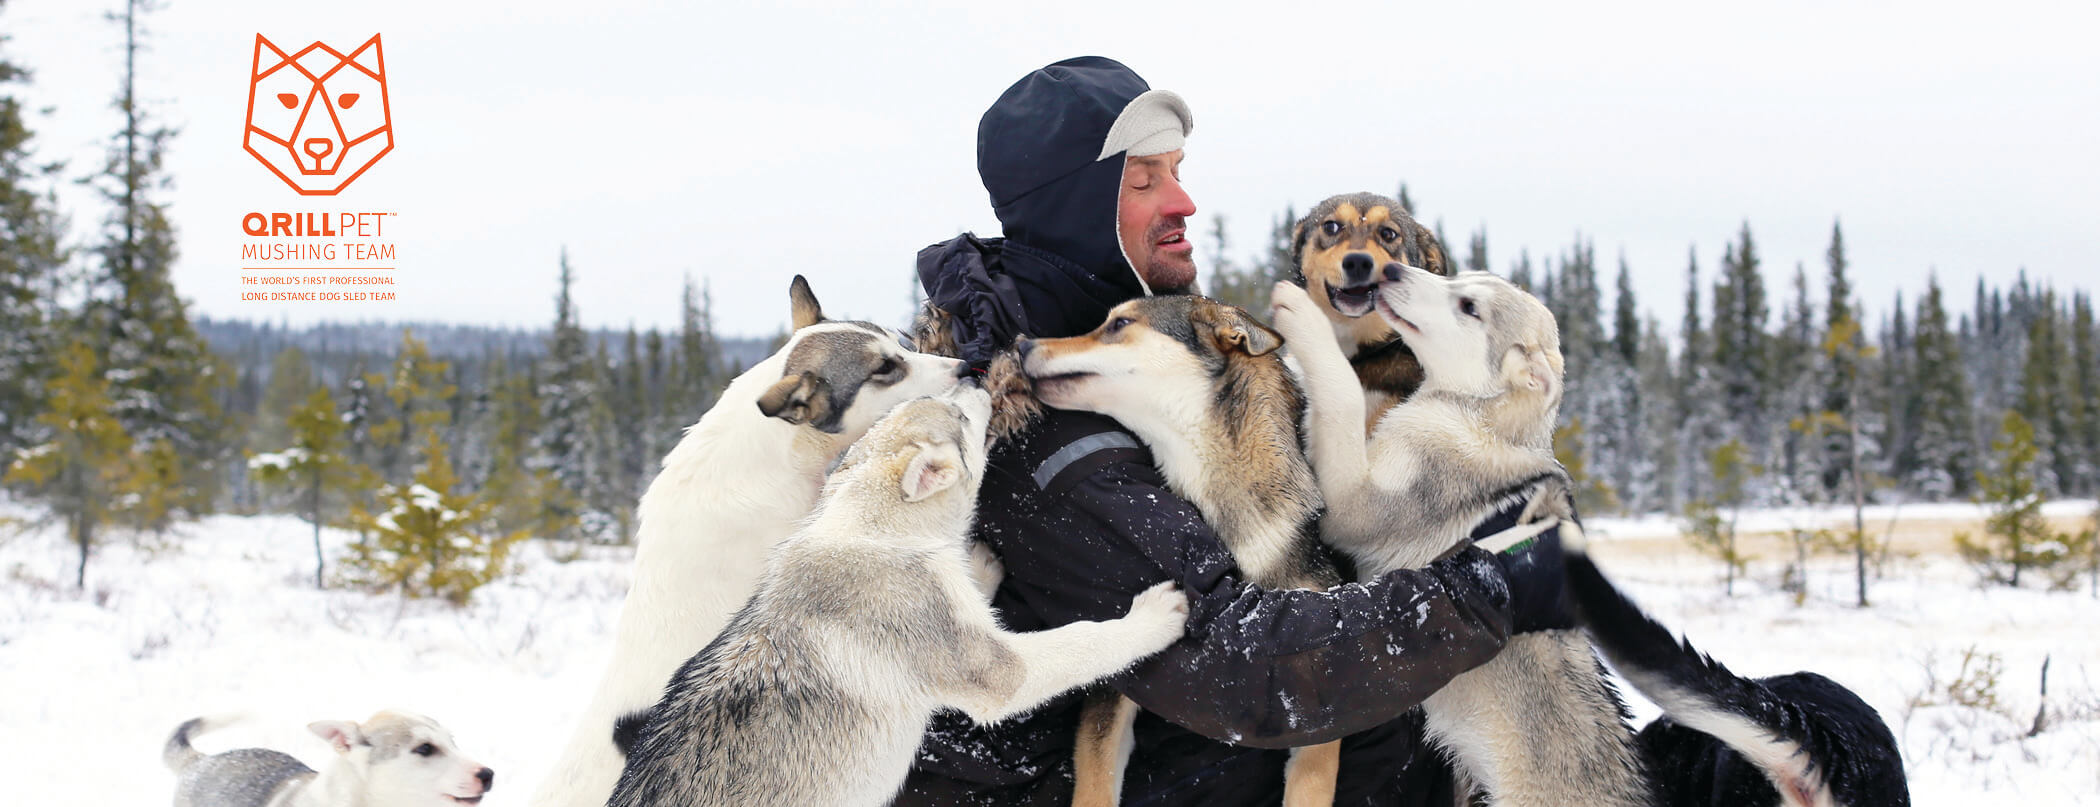 TeamQRILL Pet Dog Mushing Website Picture Small.jpg